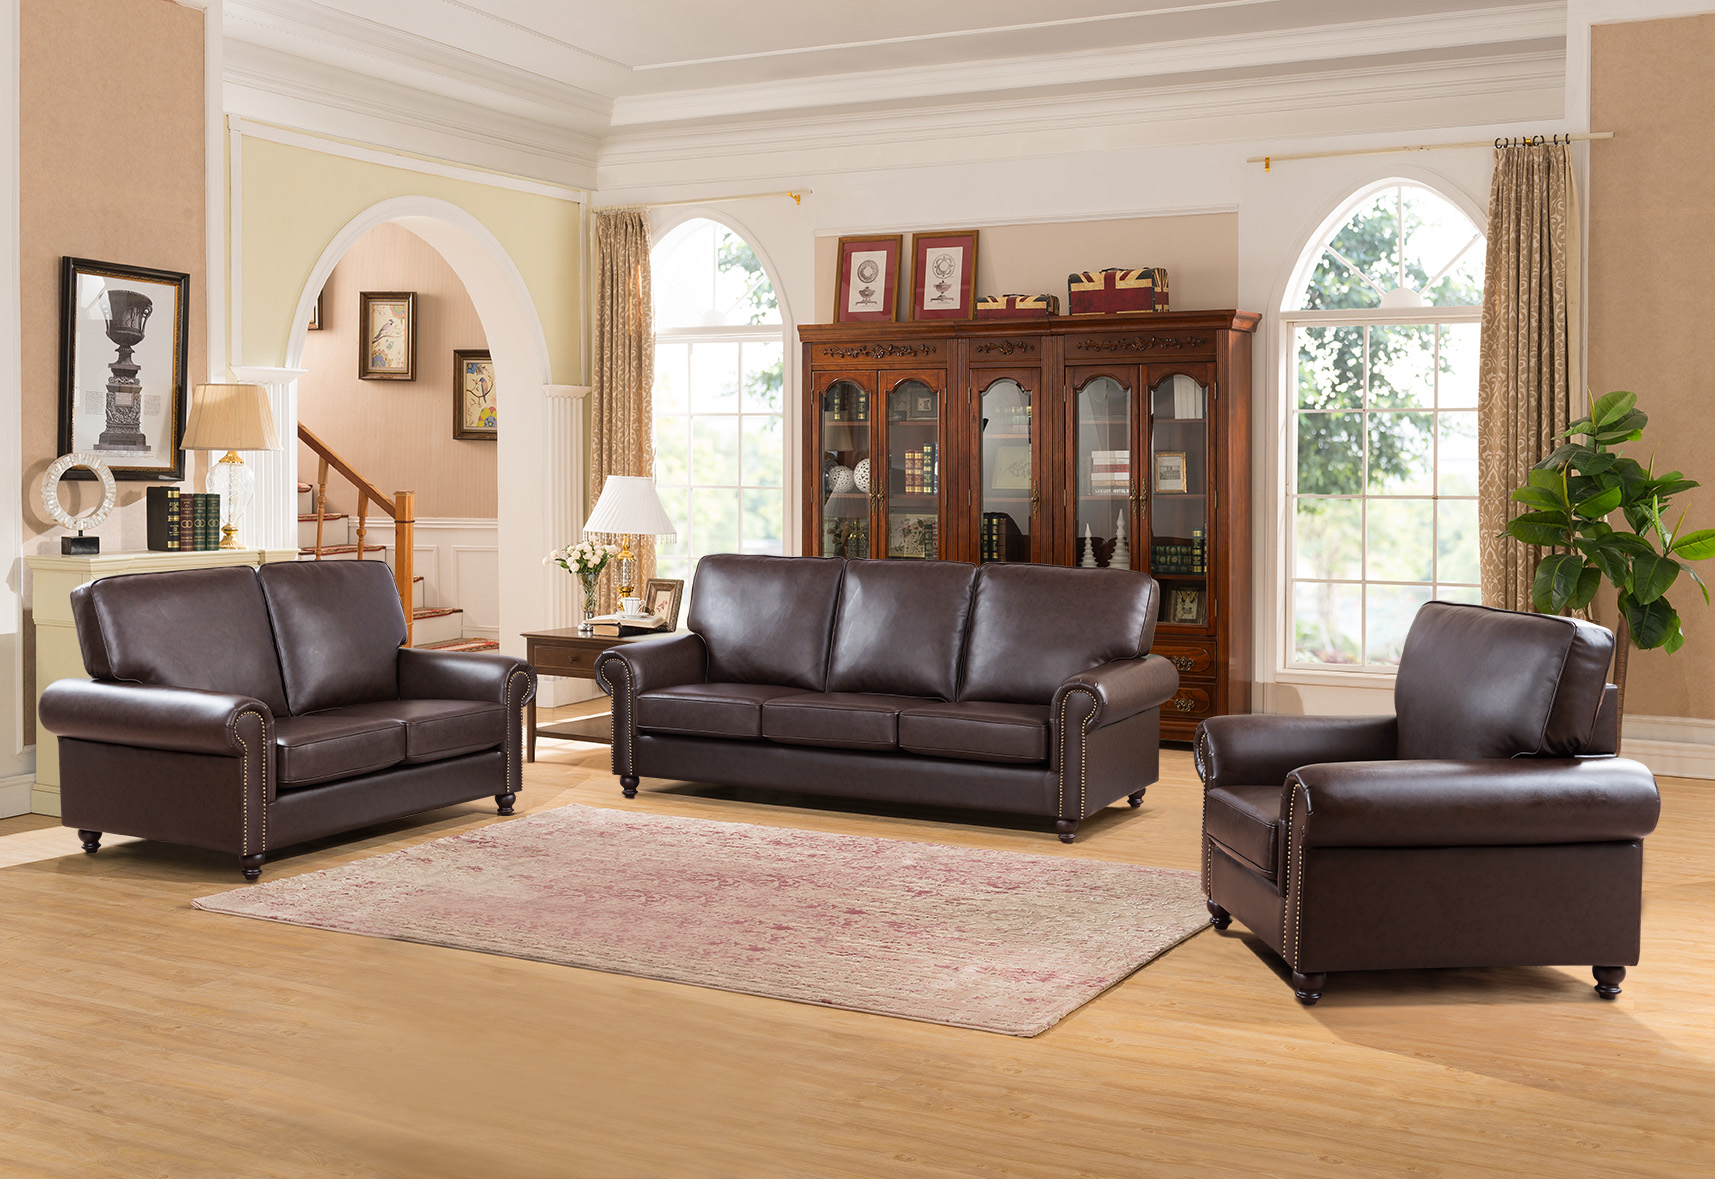 Coffee Color Living Room Furniture 3pc Sofa Set Contemporary Sofa Loveseat Chair